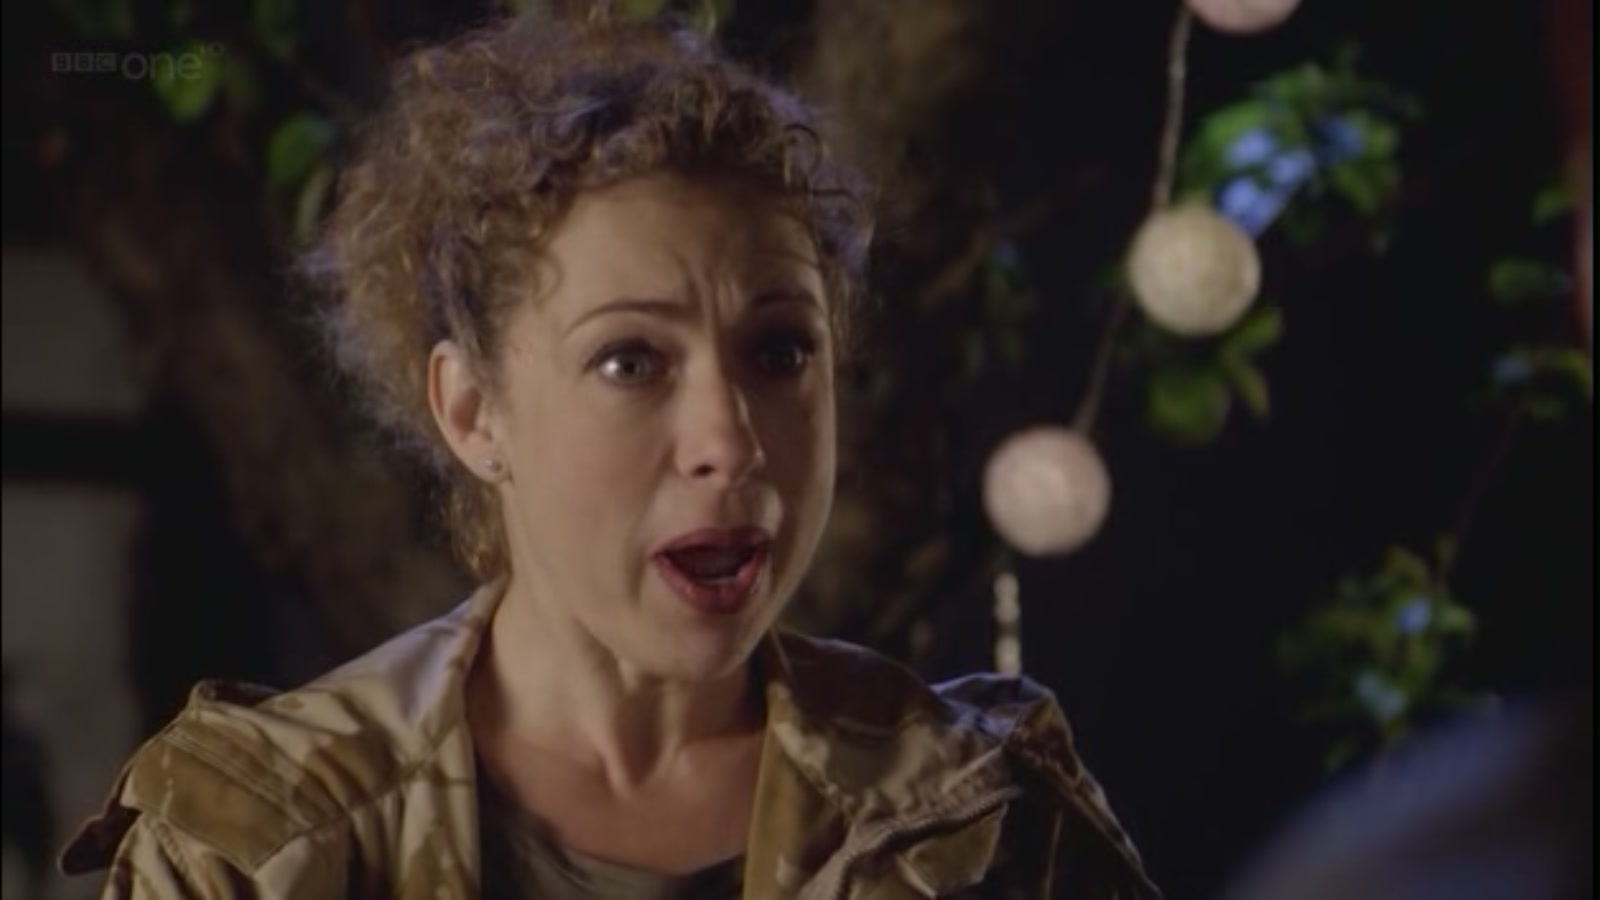 Doctor who 6x13 the wedding of river song